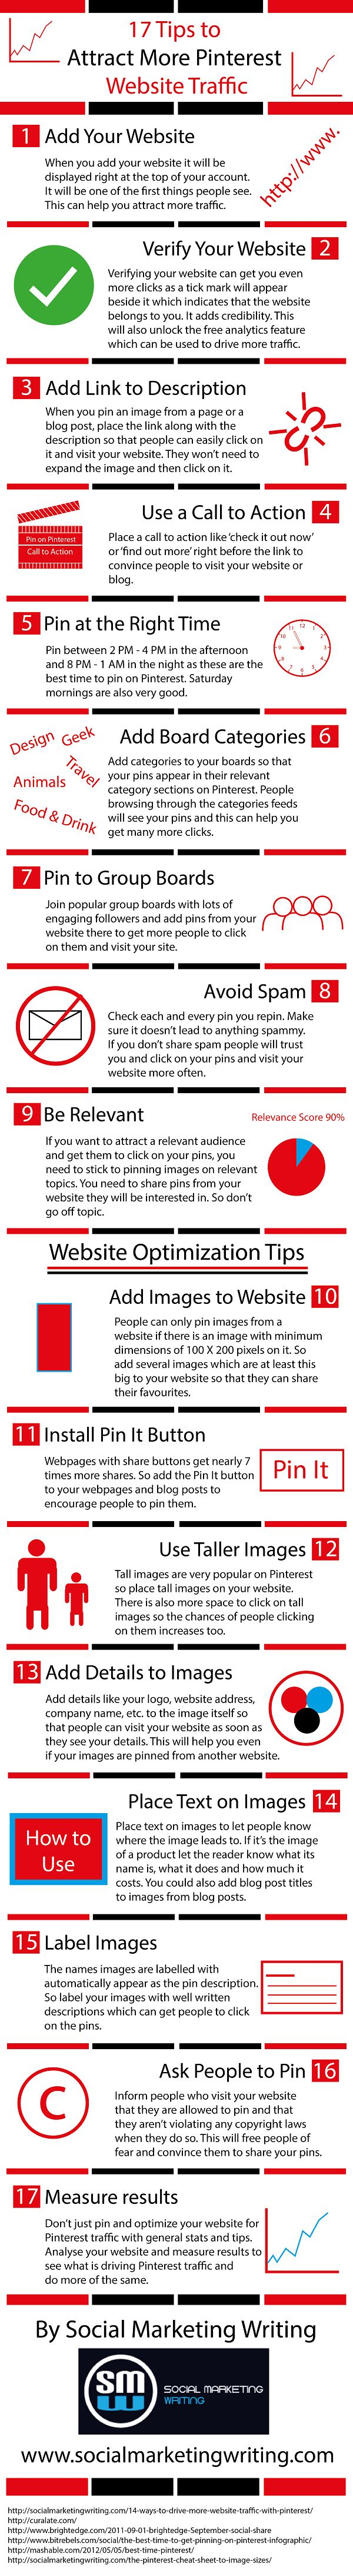 17 Tips to Attract More Pinterest Website Traffic [Infographic] http://socialmarketingwriting.com/17-tips-attract-pinterest-website-traffic-infographic/